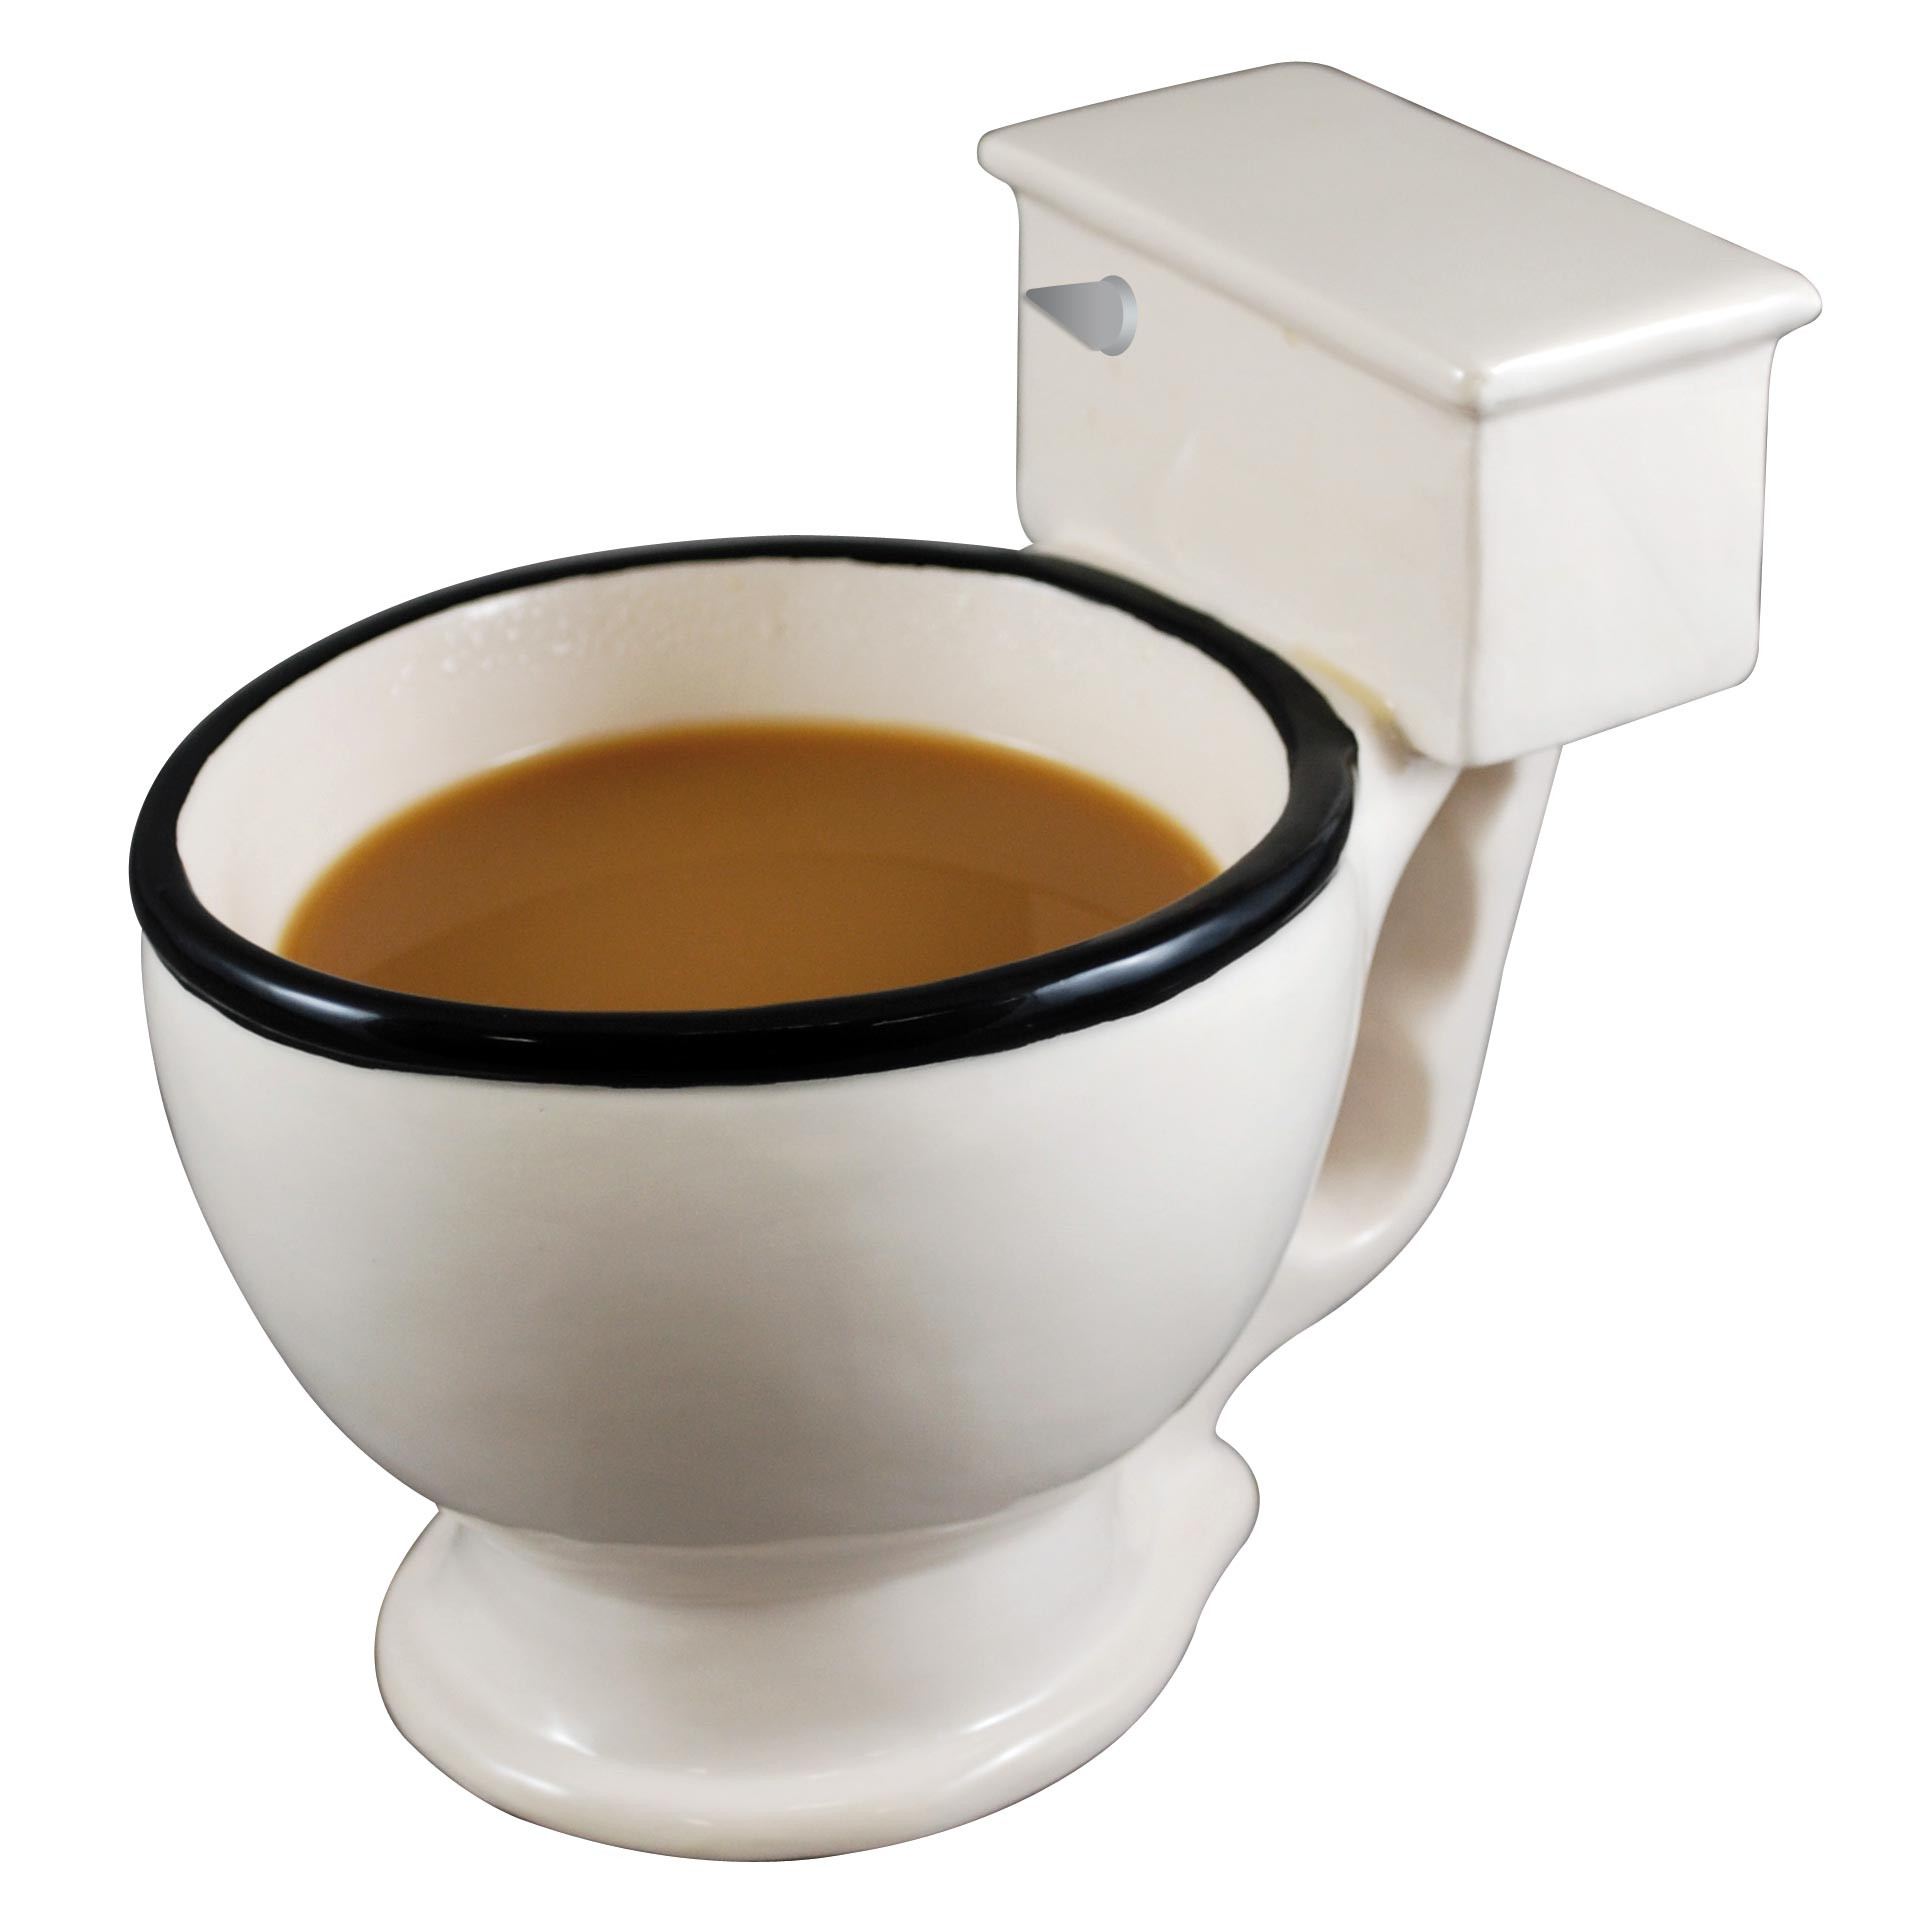 Potty mouth has a whole new meaning! Perfect for those mornings when you need an extra chuckle, or to lighten the mood when your day is going down the crapper, a toilet mug is the perfect potty partner. Crafted from ceramic and featuring a no-flush handle #mug